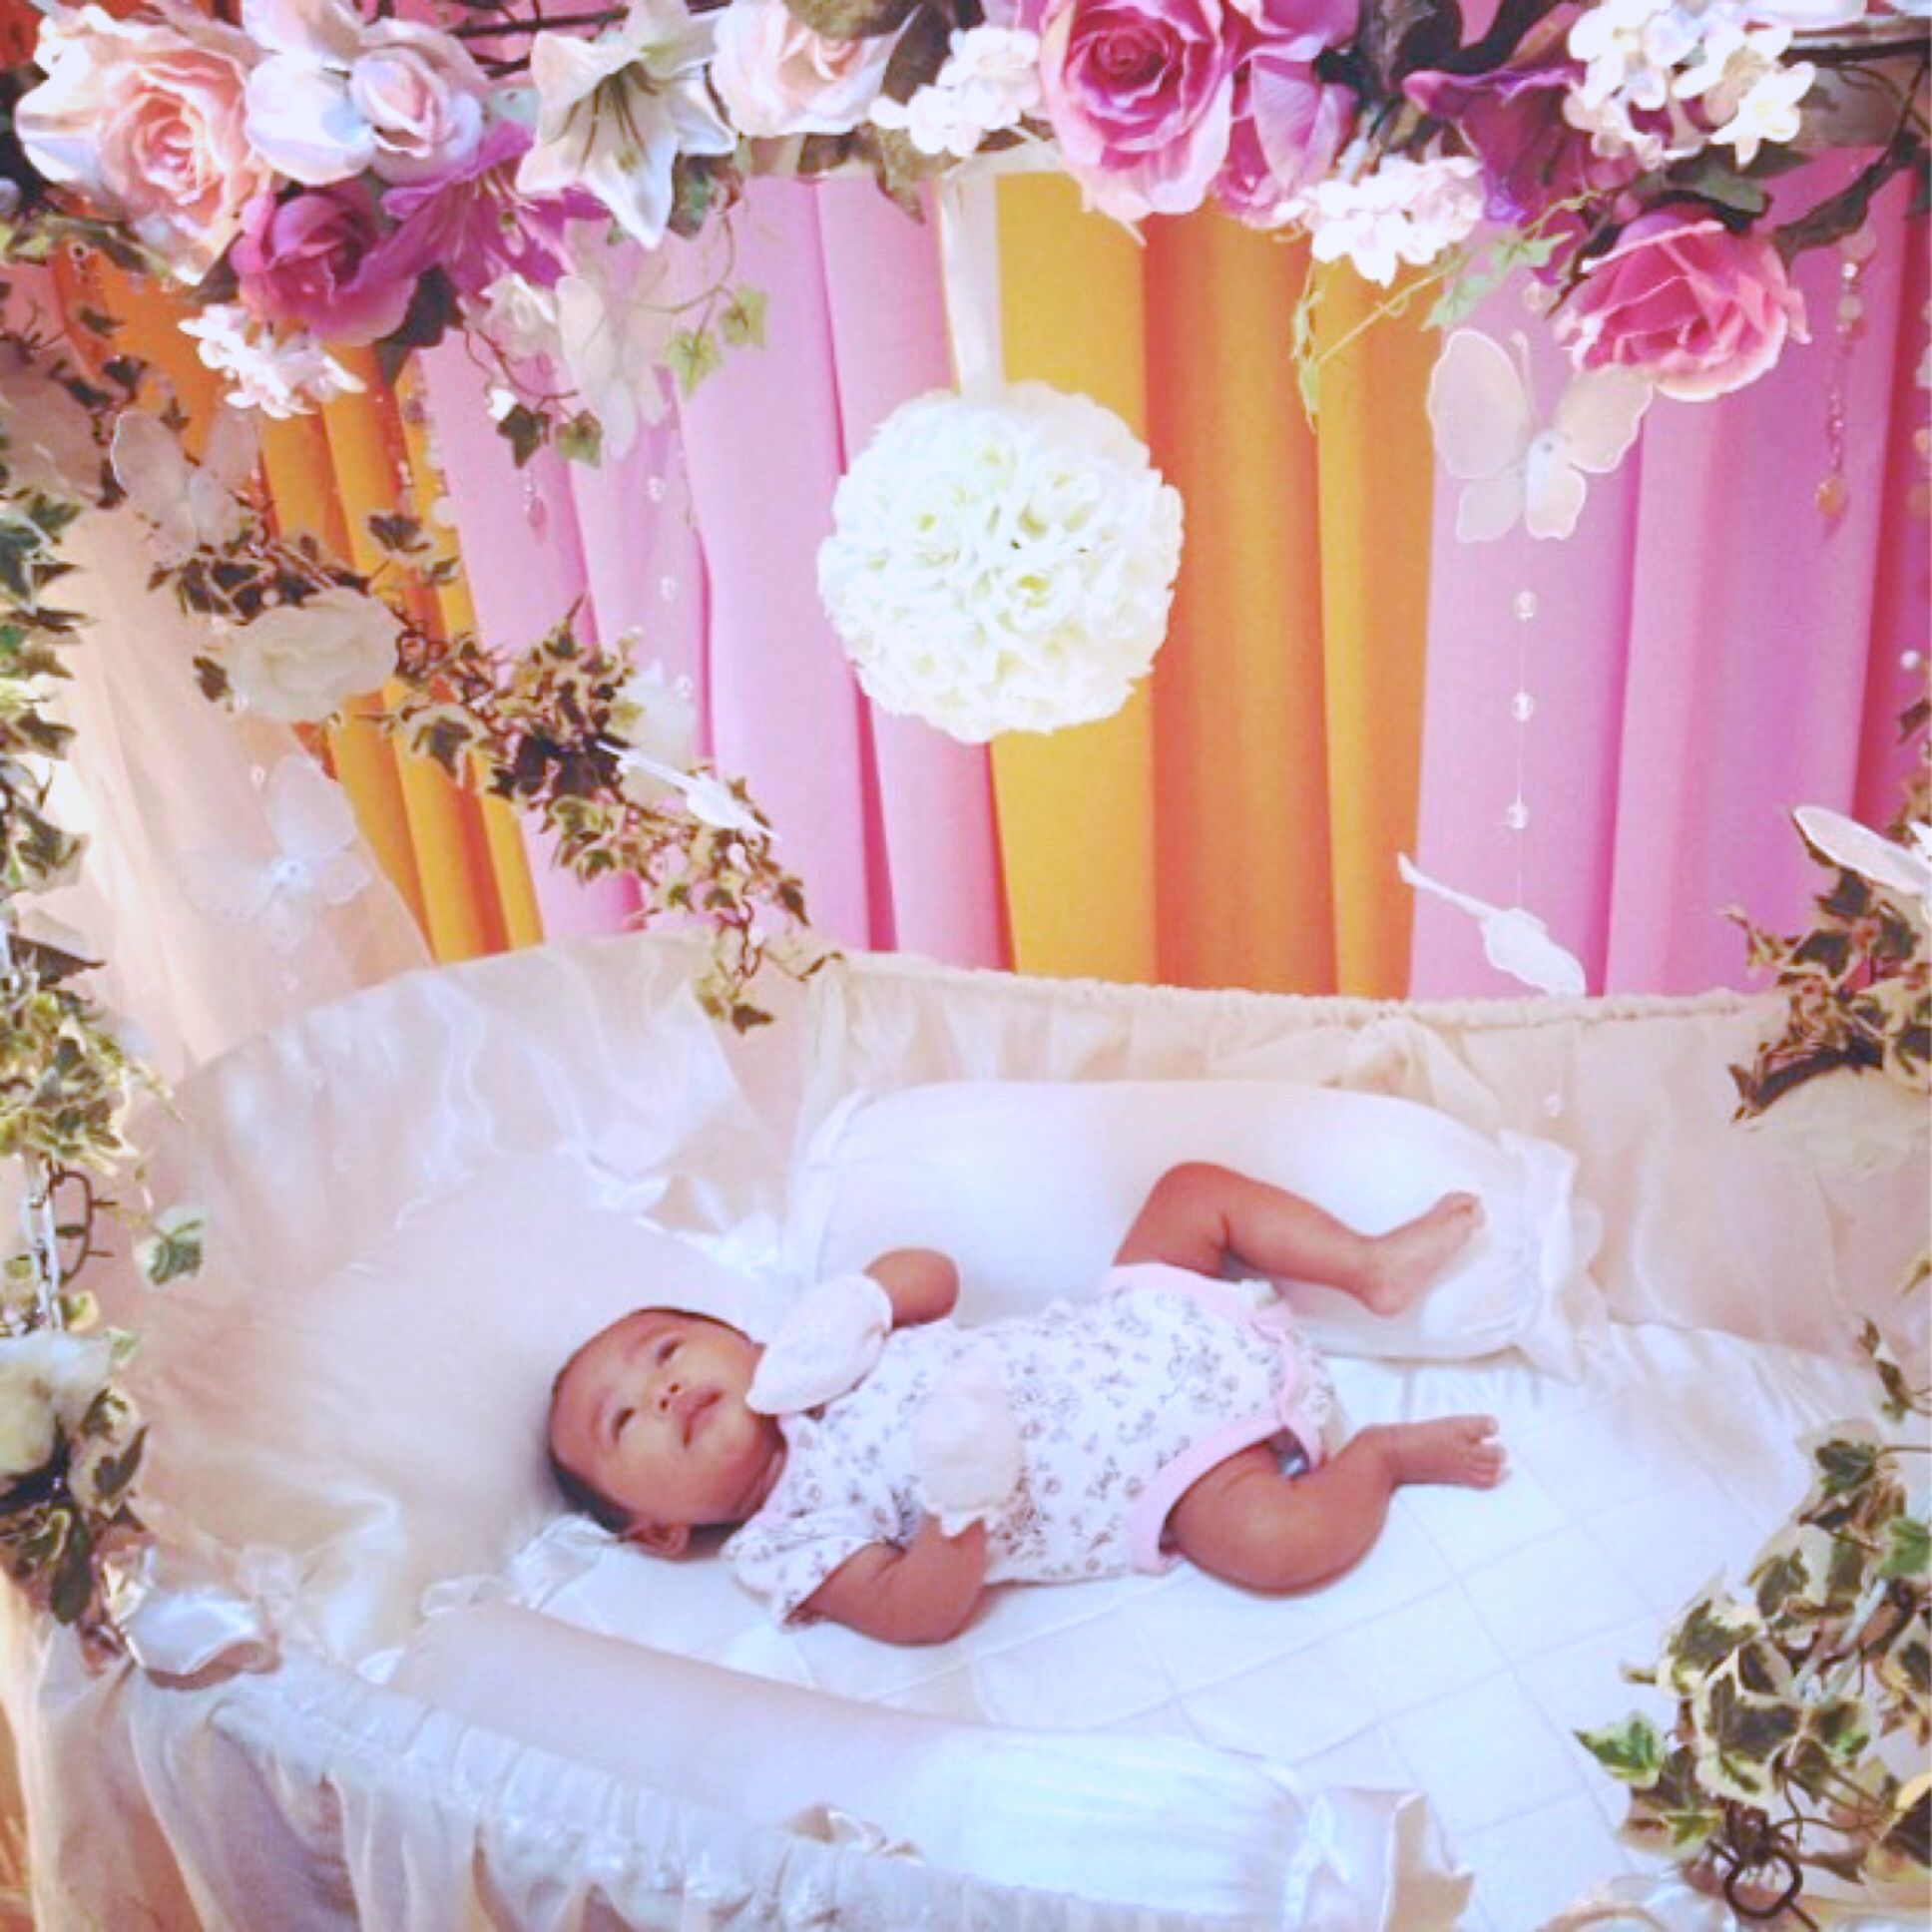 My dream cradle in pink nur sofia 39 s baby shower after 40 for Baby namkaran decoration